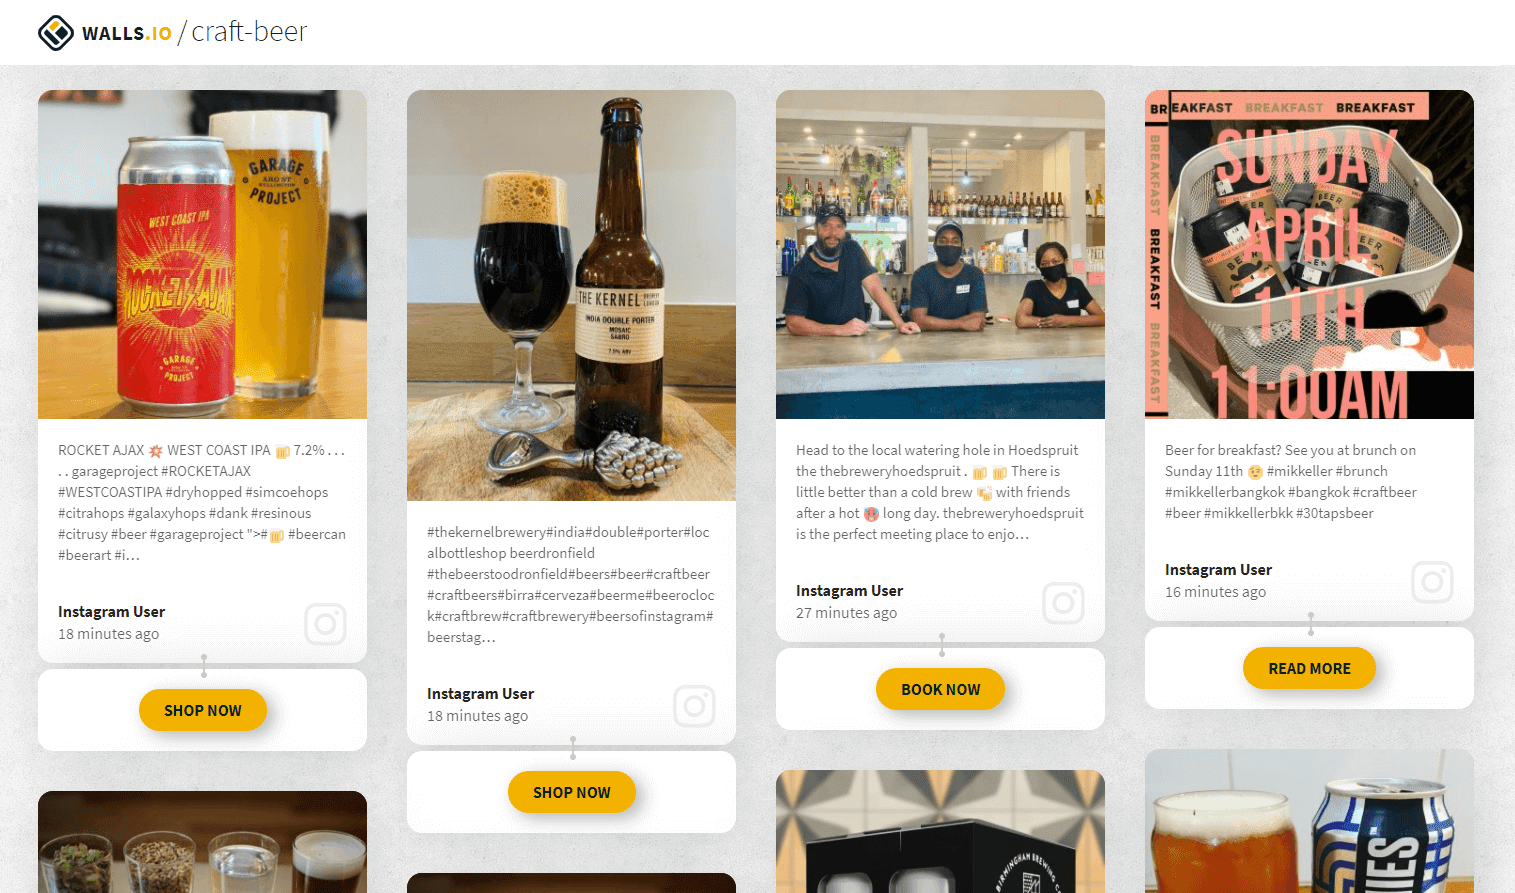 """Increase online sales through social media step 3. A social media wall with different posts about craft beer. Two posts show a can and a glass full of beer and a """"Shop now"""" button. Another post promotes a craft beer event with a """"Book now"""" button."""